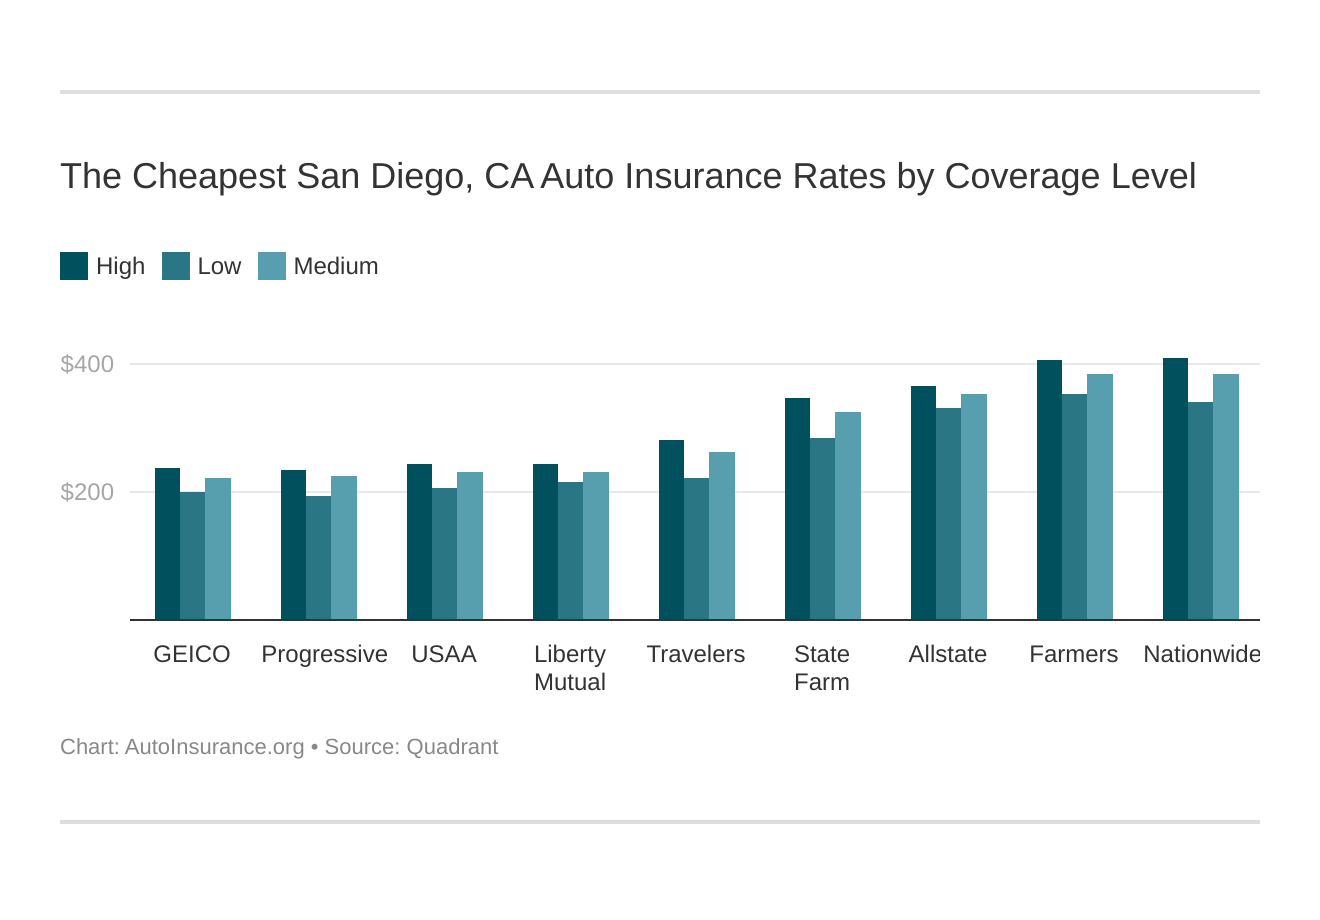 The Cheapest San Diego, CA Auto Insurance Rates by Coverage Level